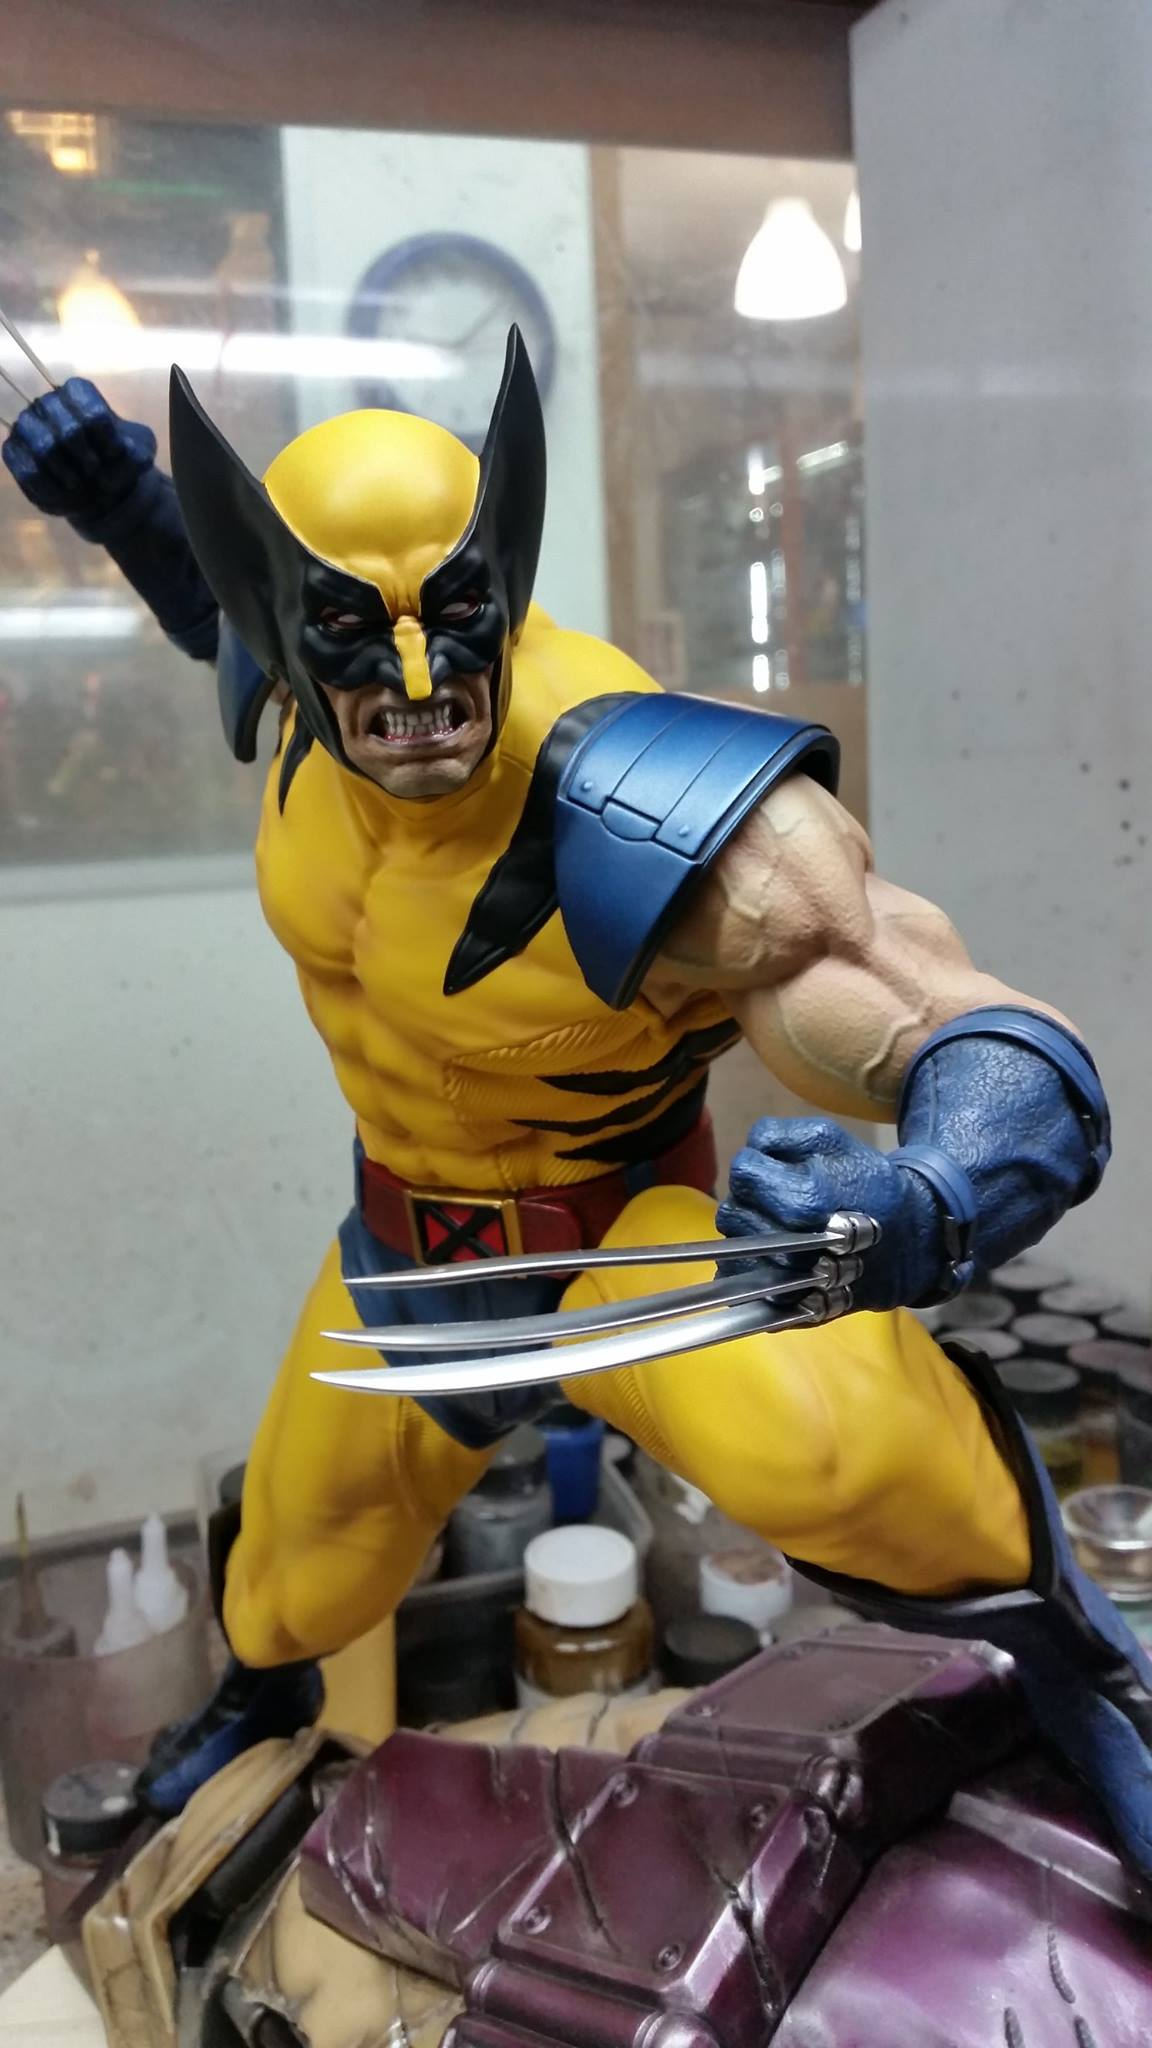 Premium Collectibles : Wolverine - Comics Version - Page 2 4990661046060714171091318431151700177611781895484o